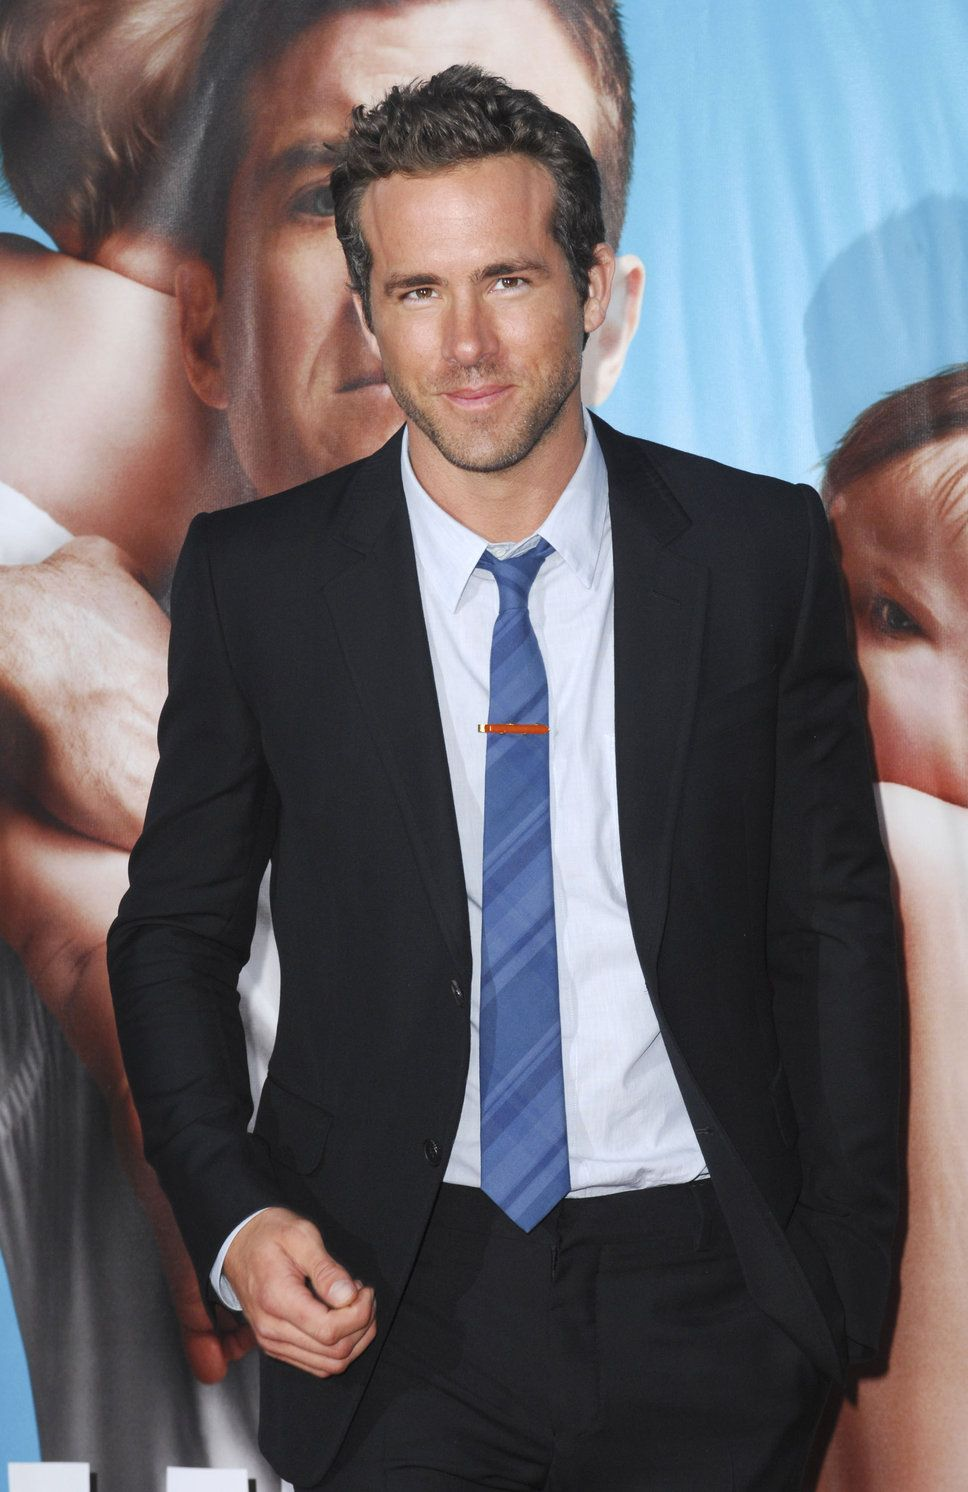 1000  images about Suit on Pinterest | English, Ryan reynolds and